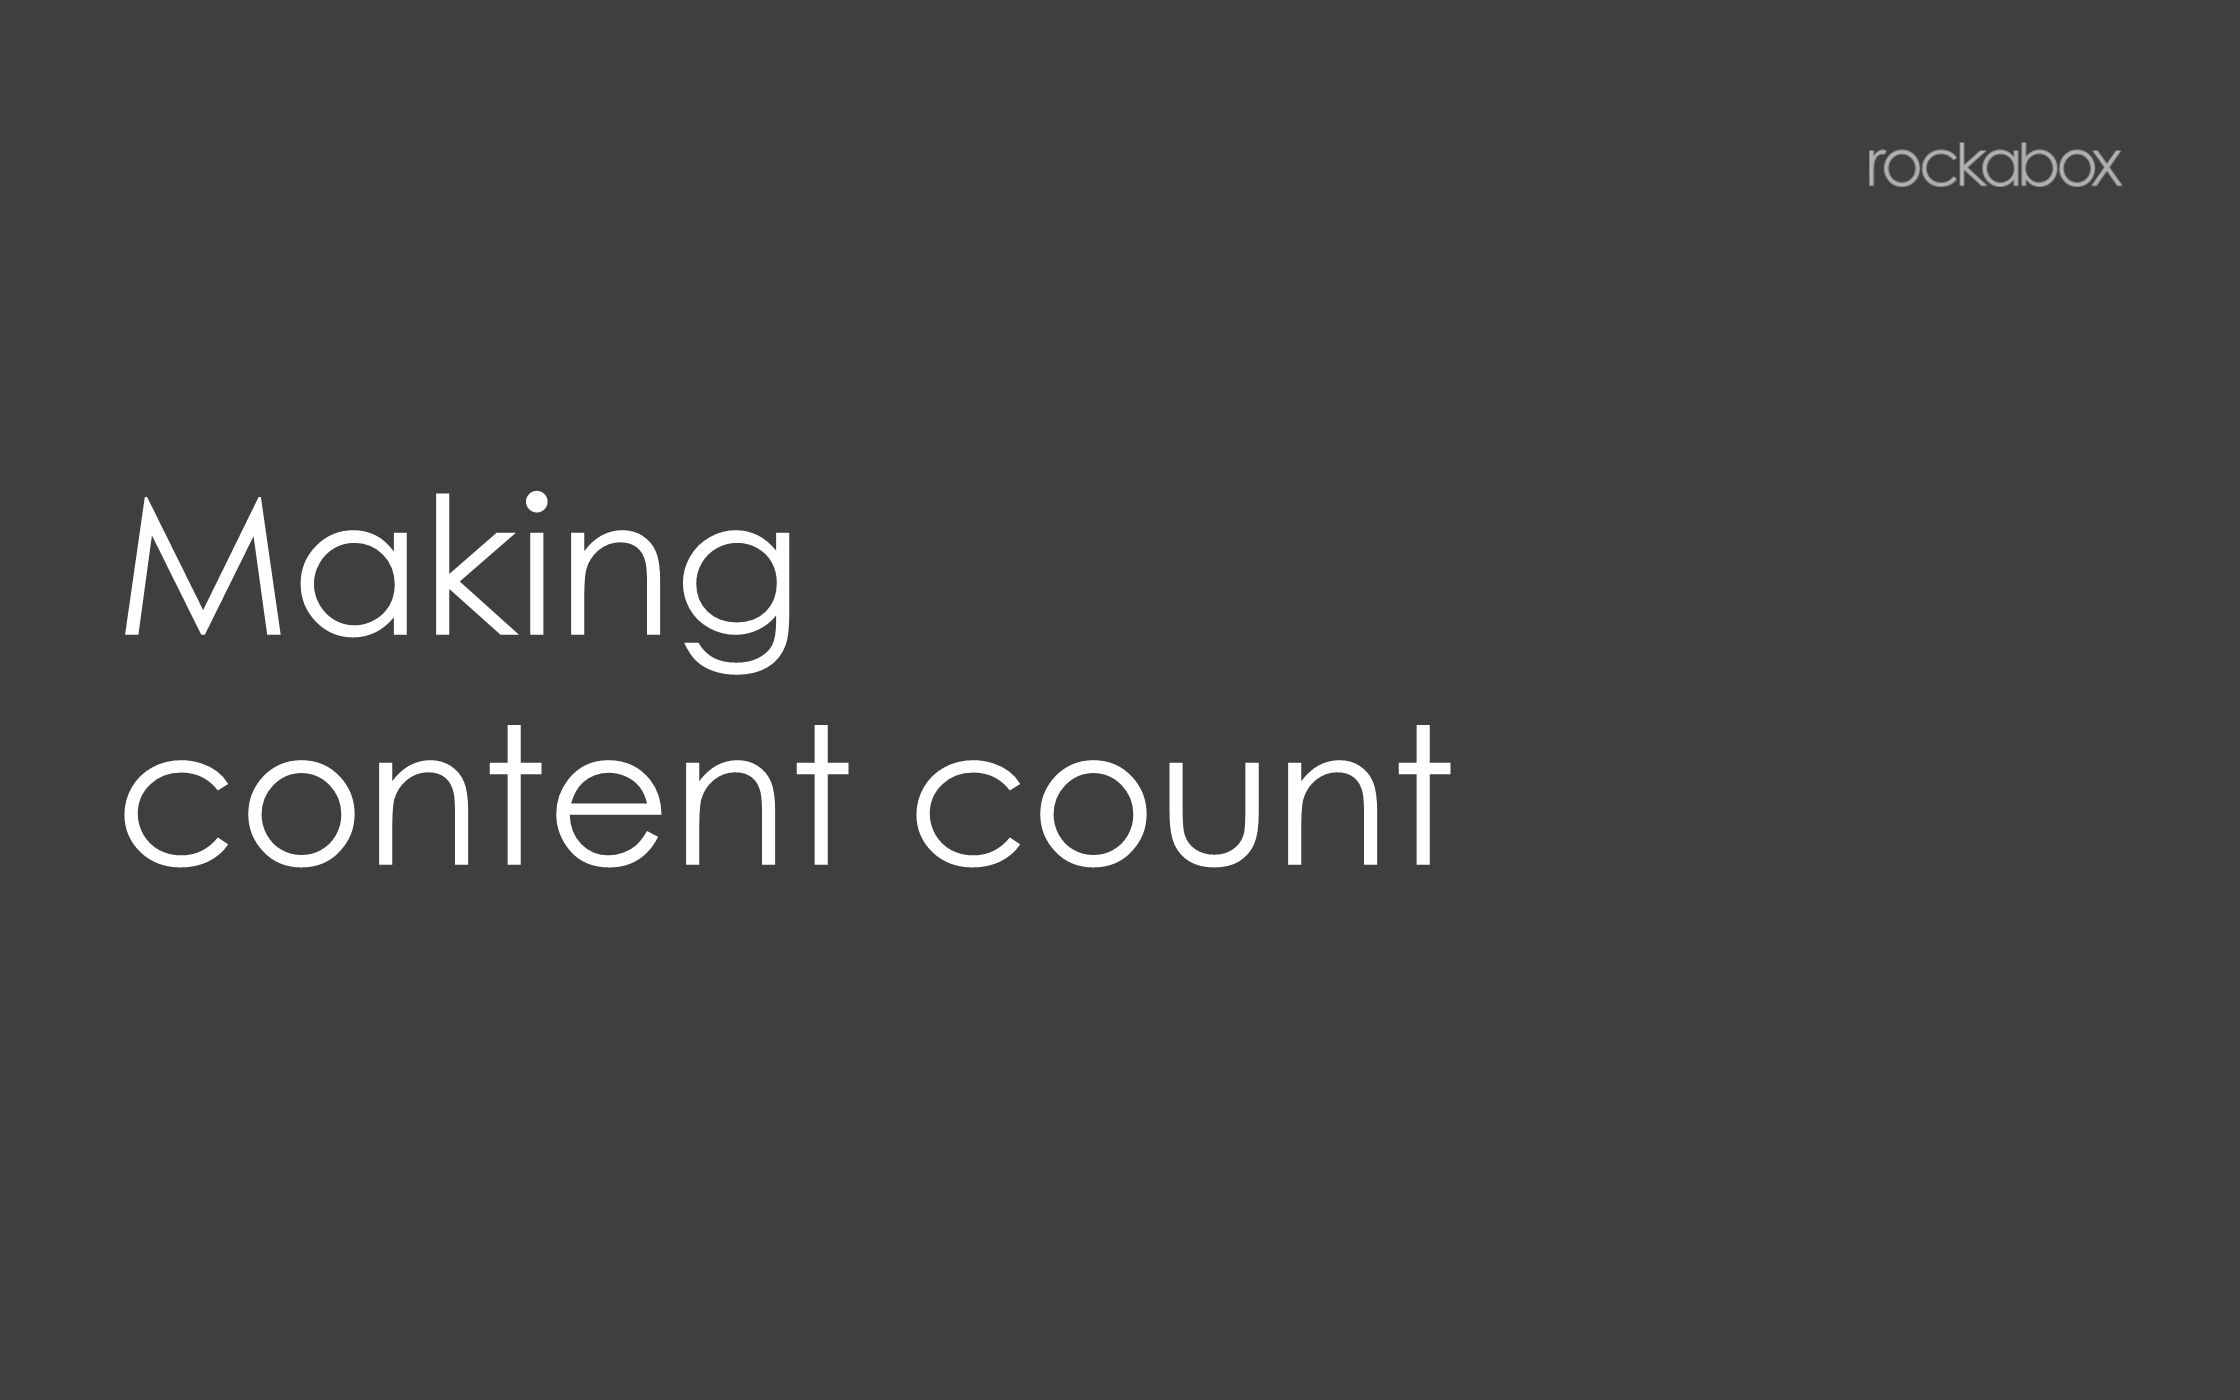 Making content count